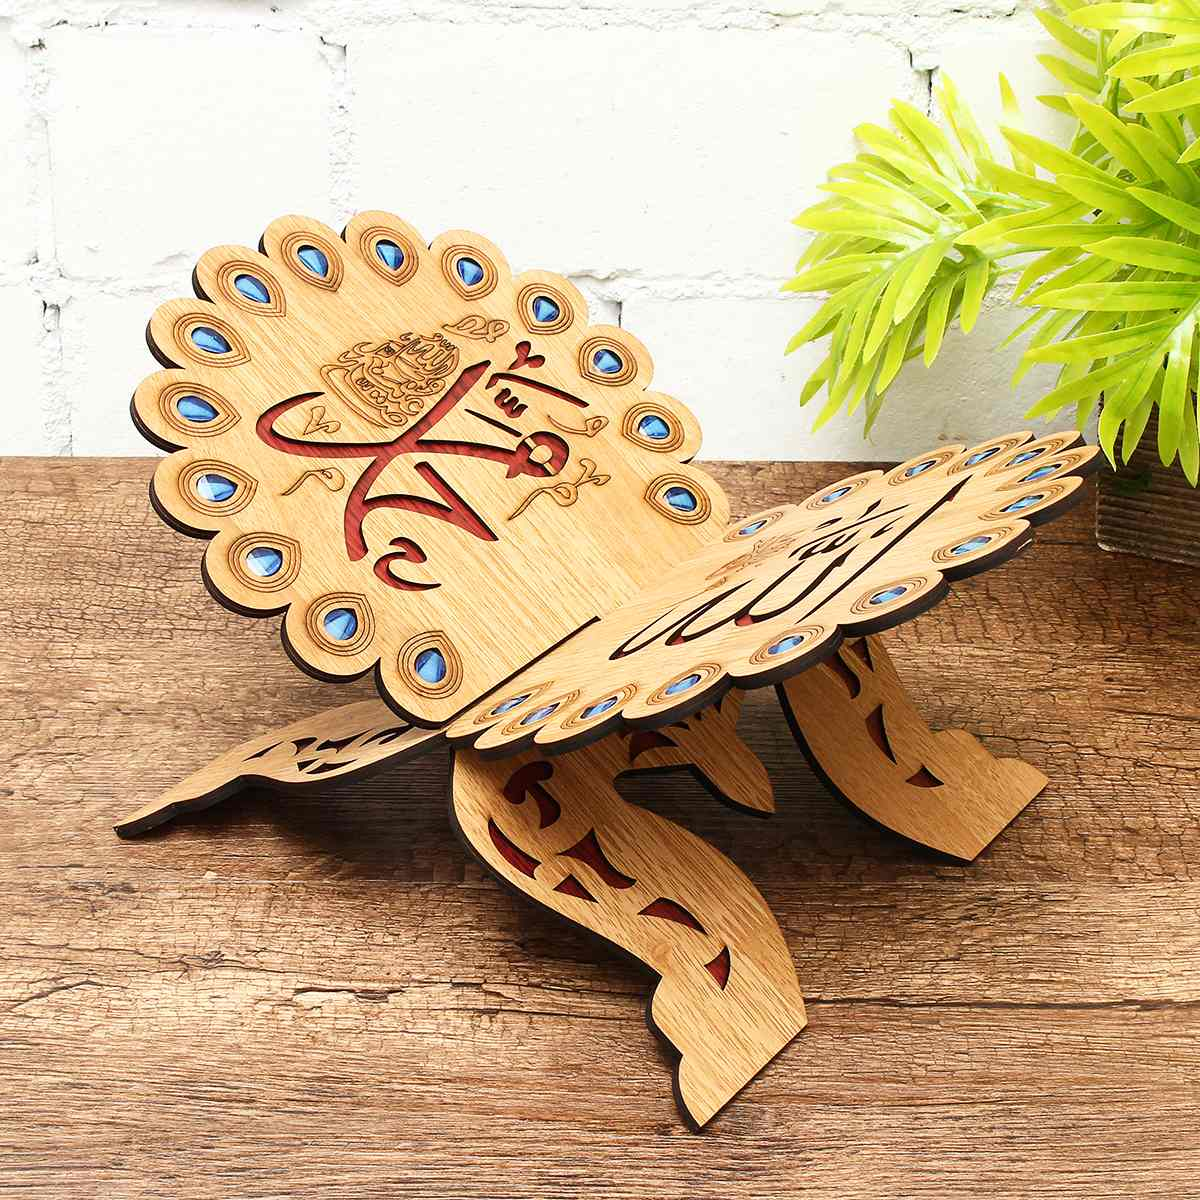 Desk Accessories & Organizer 33*23/30*20cm Removable Wooden Book Stand Holder Quran Muslim Ramadan Allah Islamic Gift Handmade Wood Decor Lightweight Sale Price Bookends